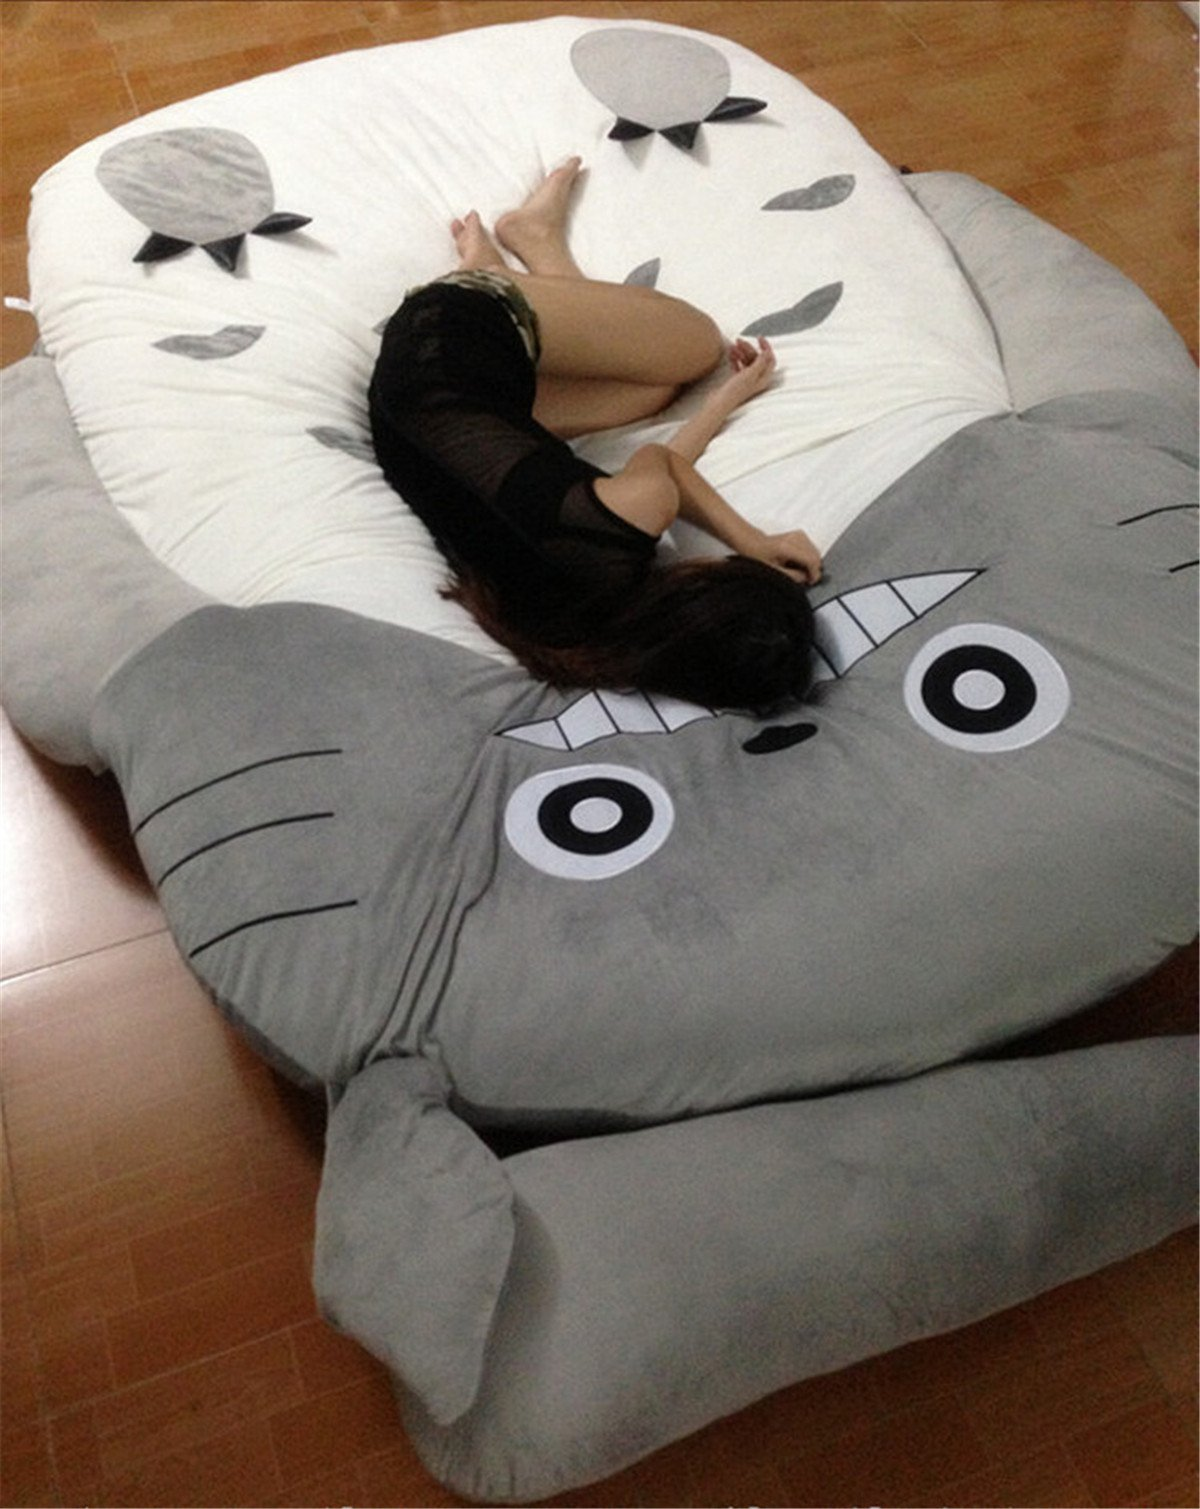 HOT SALE Children's and Adult Totoro Design Big Sofa Totoro Bed Mattress Sleeping Bag Mattress by VU ROUL (Image #4)